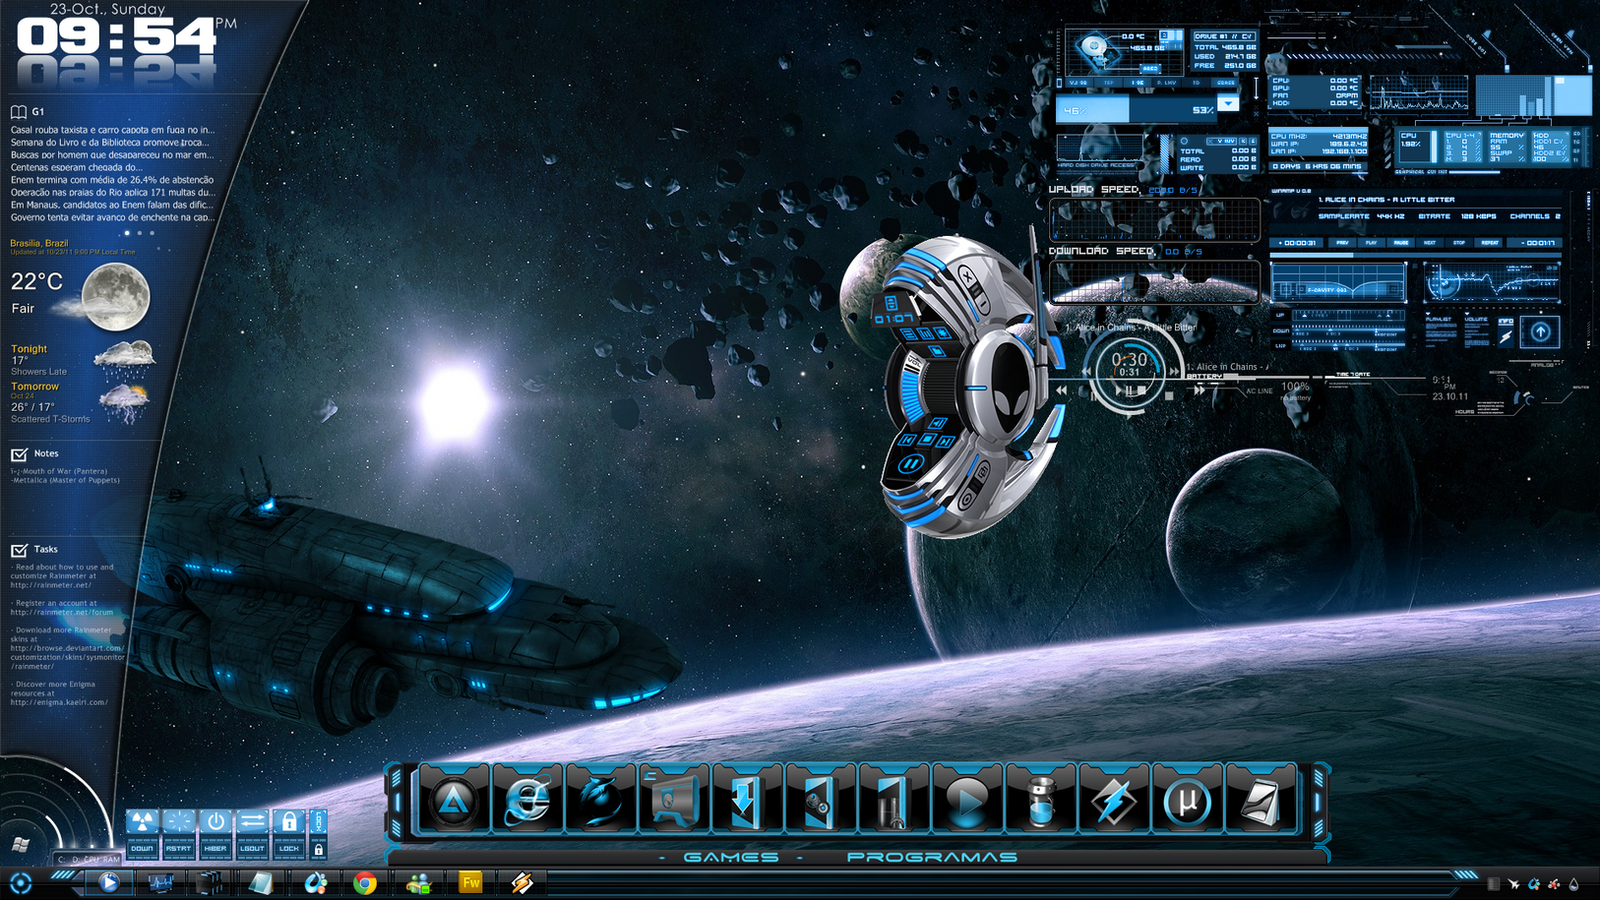 SPACECRAFT DESKTOP THEME by leobru19